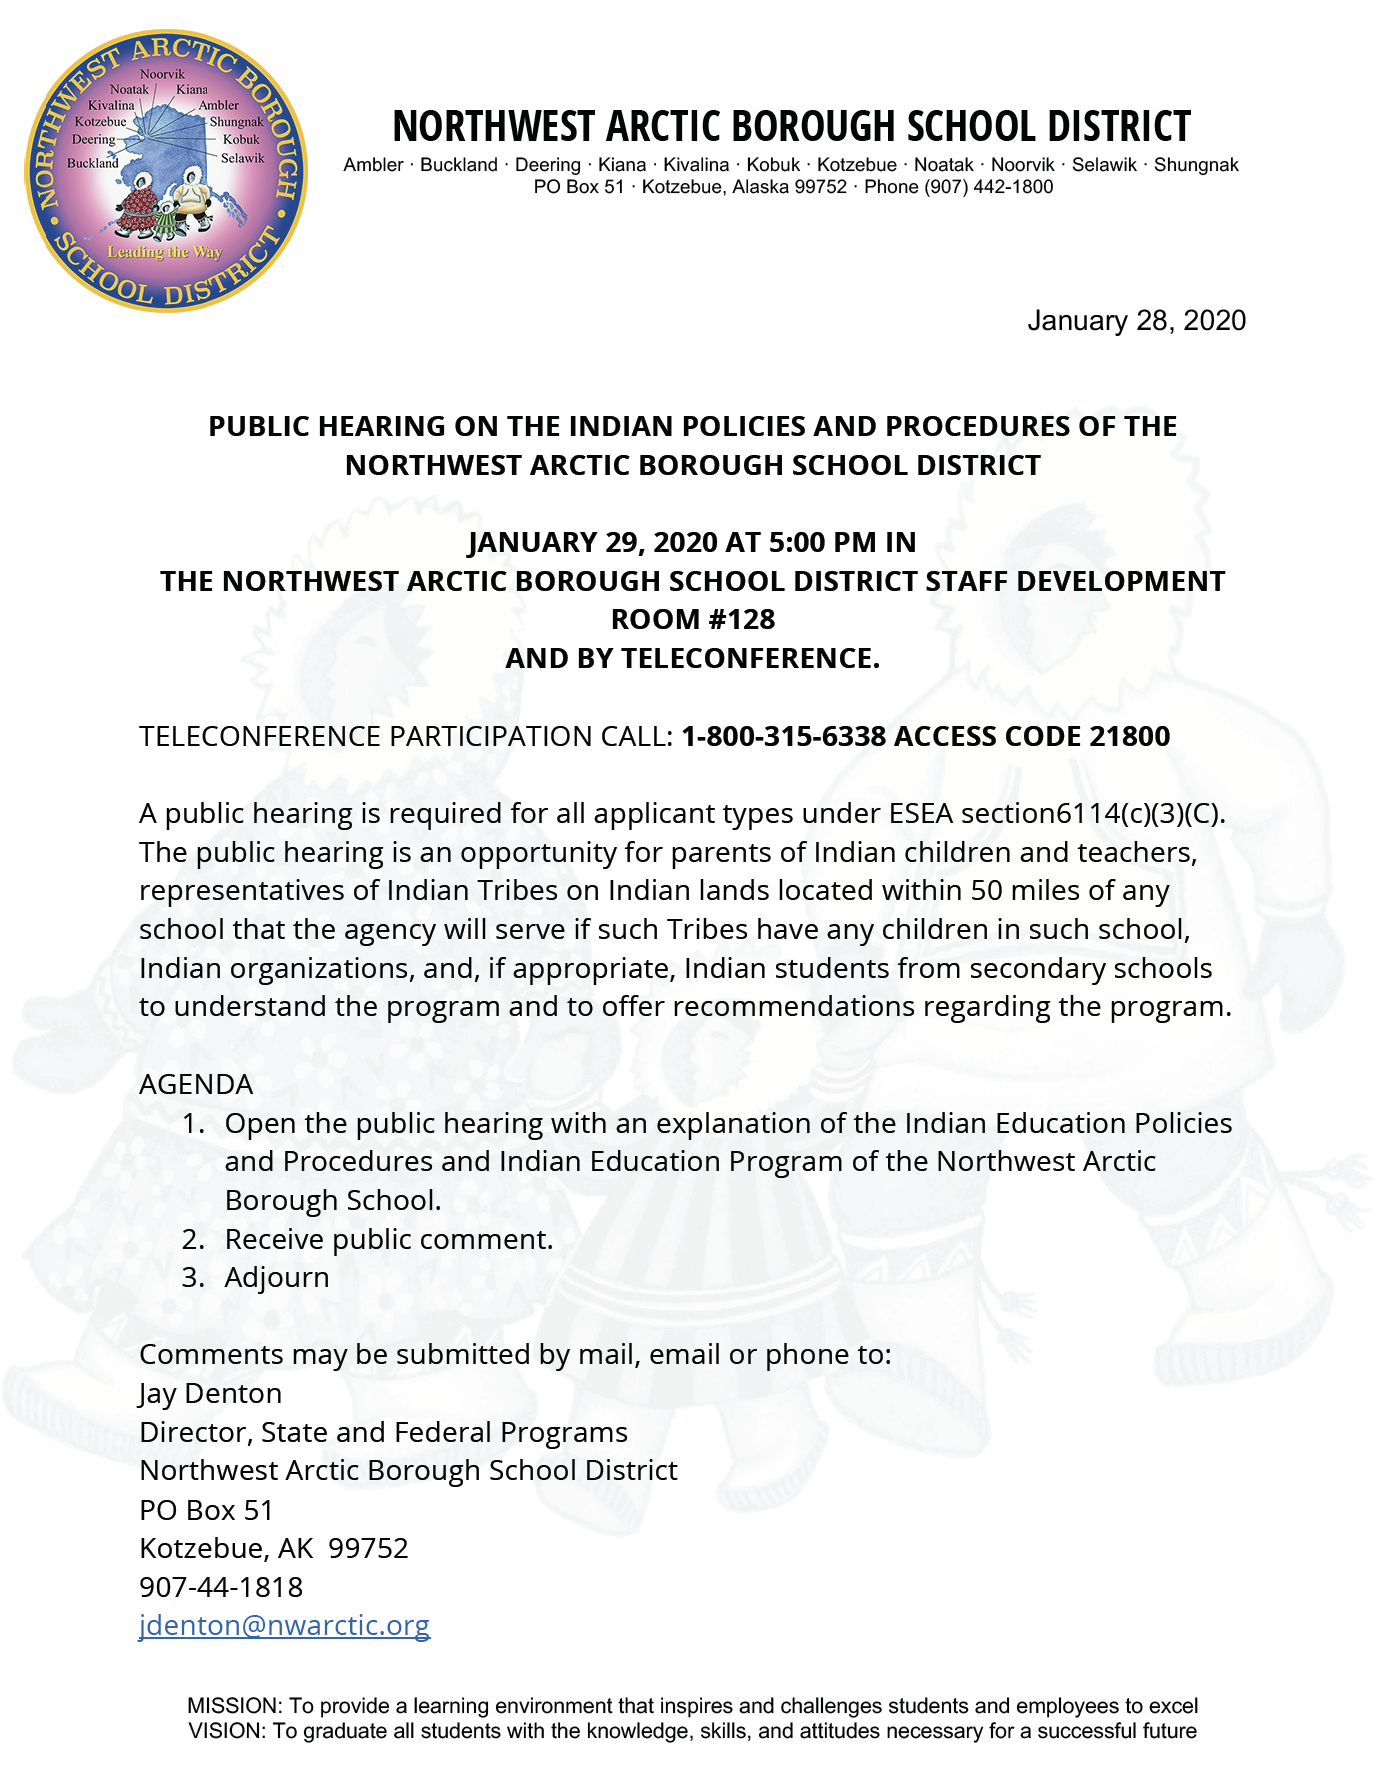 PUBLIC HEARING ON THE INDIAN POLICIES AND PROCEDURES OF THE NWABSD